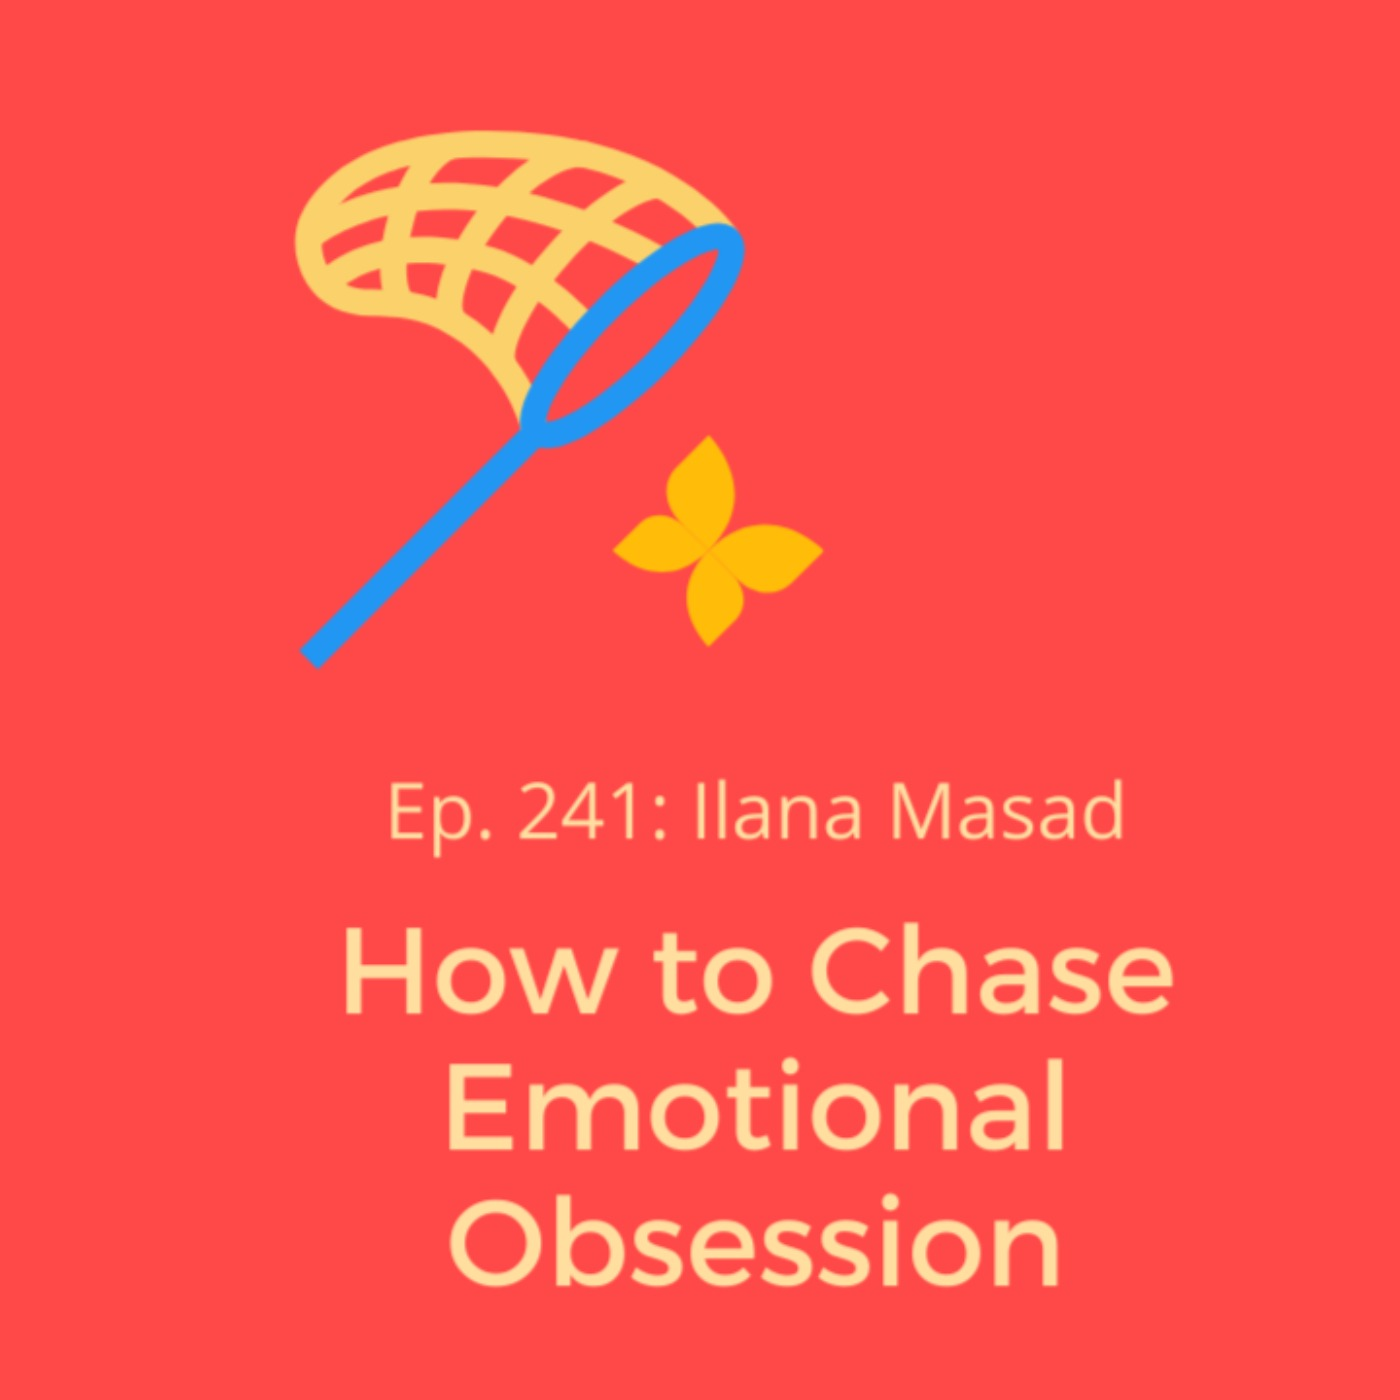 Ep. 241: Ilana Masad on How to Chase Emotional Obsession